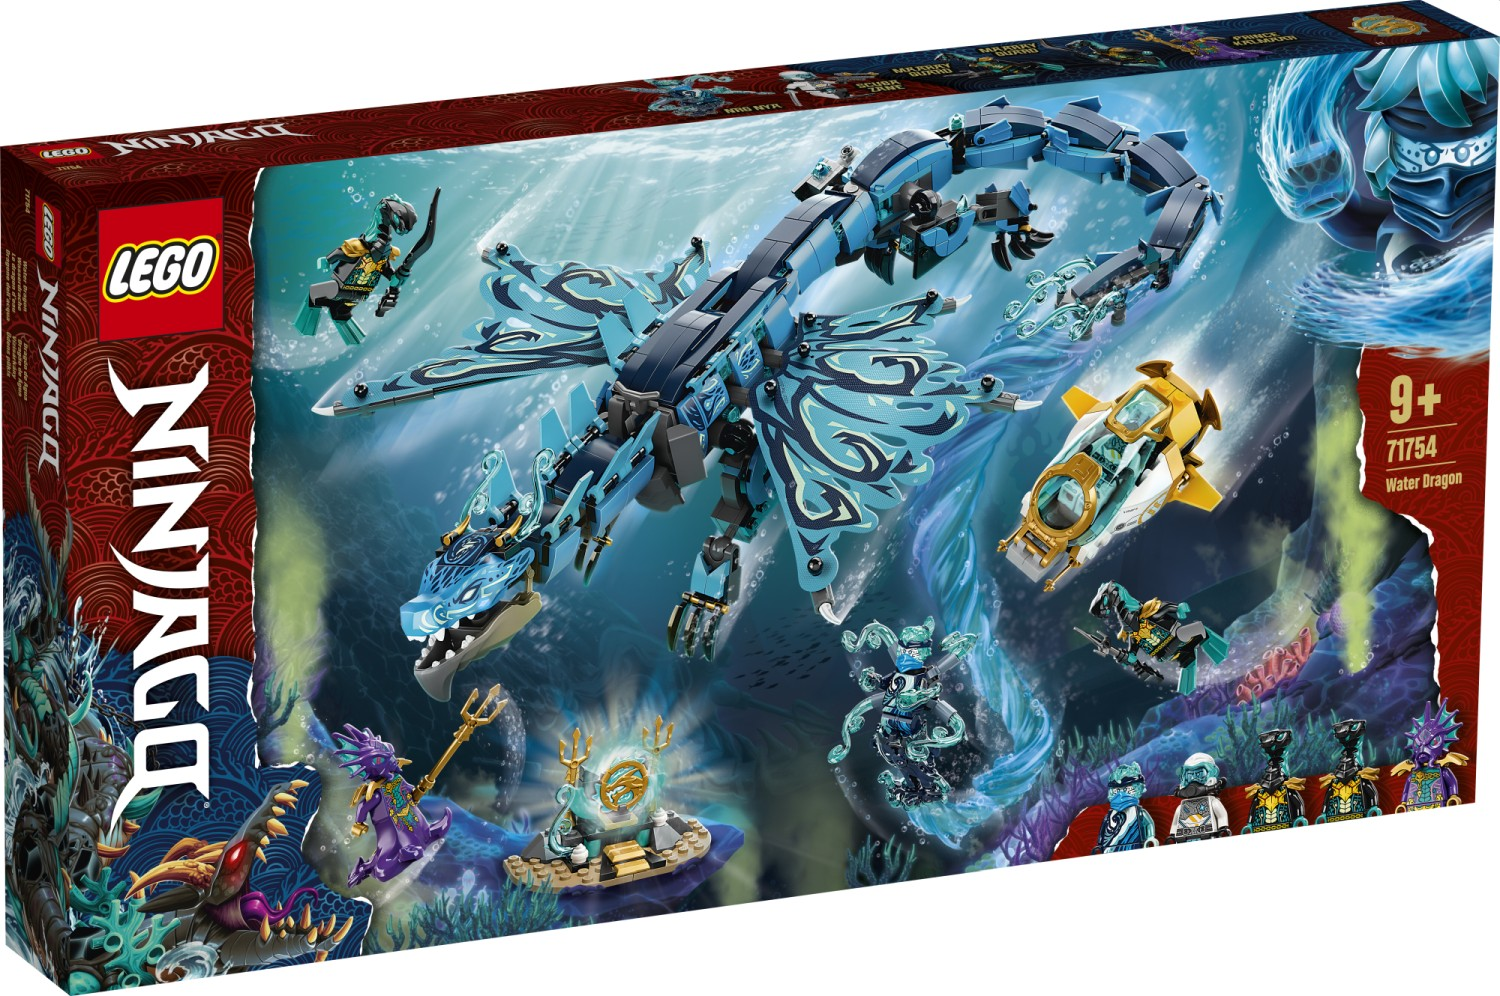 LEGO 71754 Water Dragon - 20210502